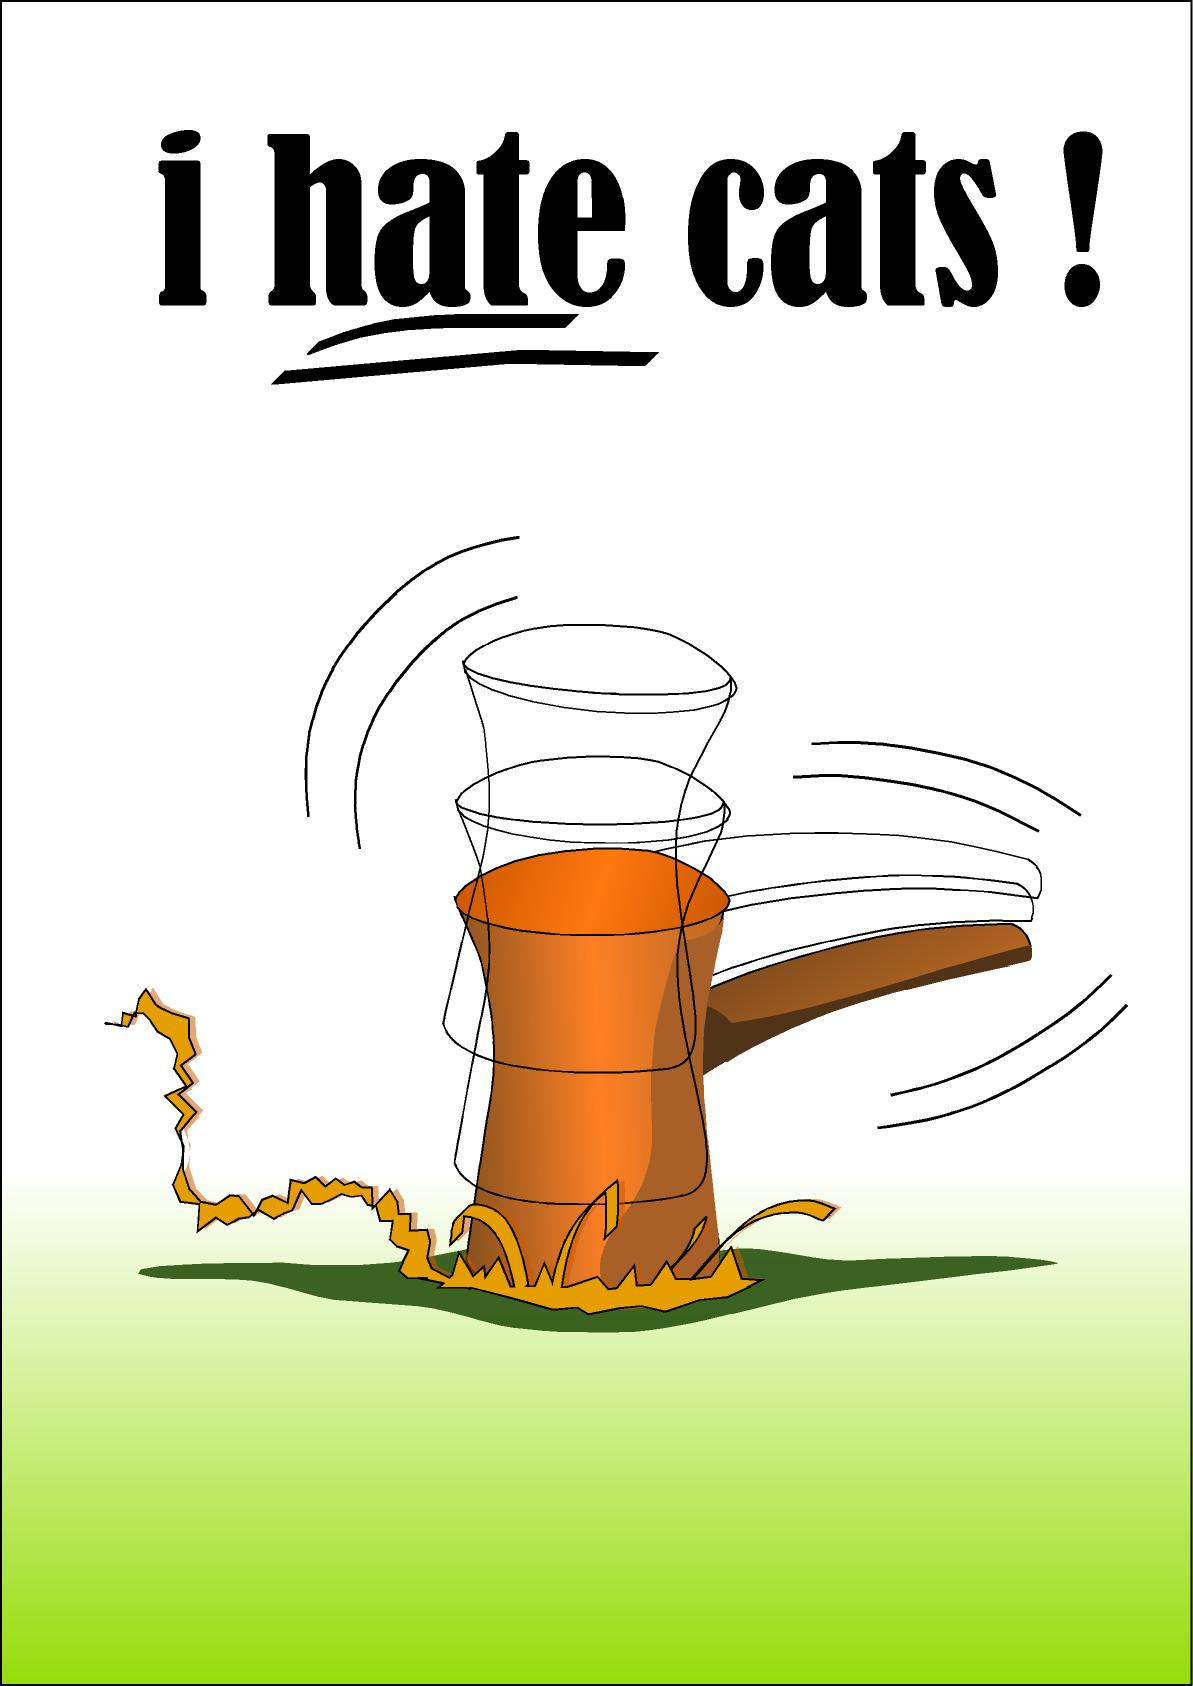 i hate cats by highone on DeviantArt